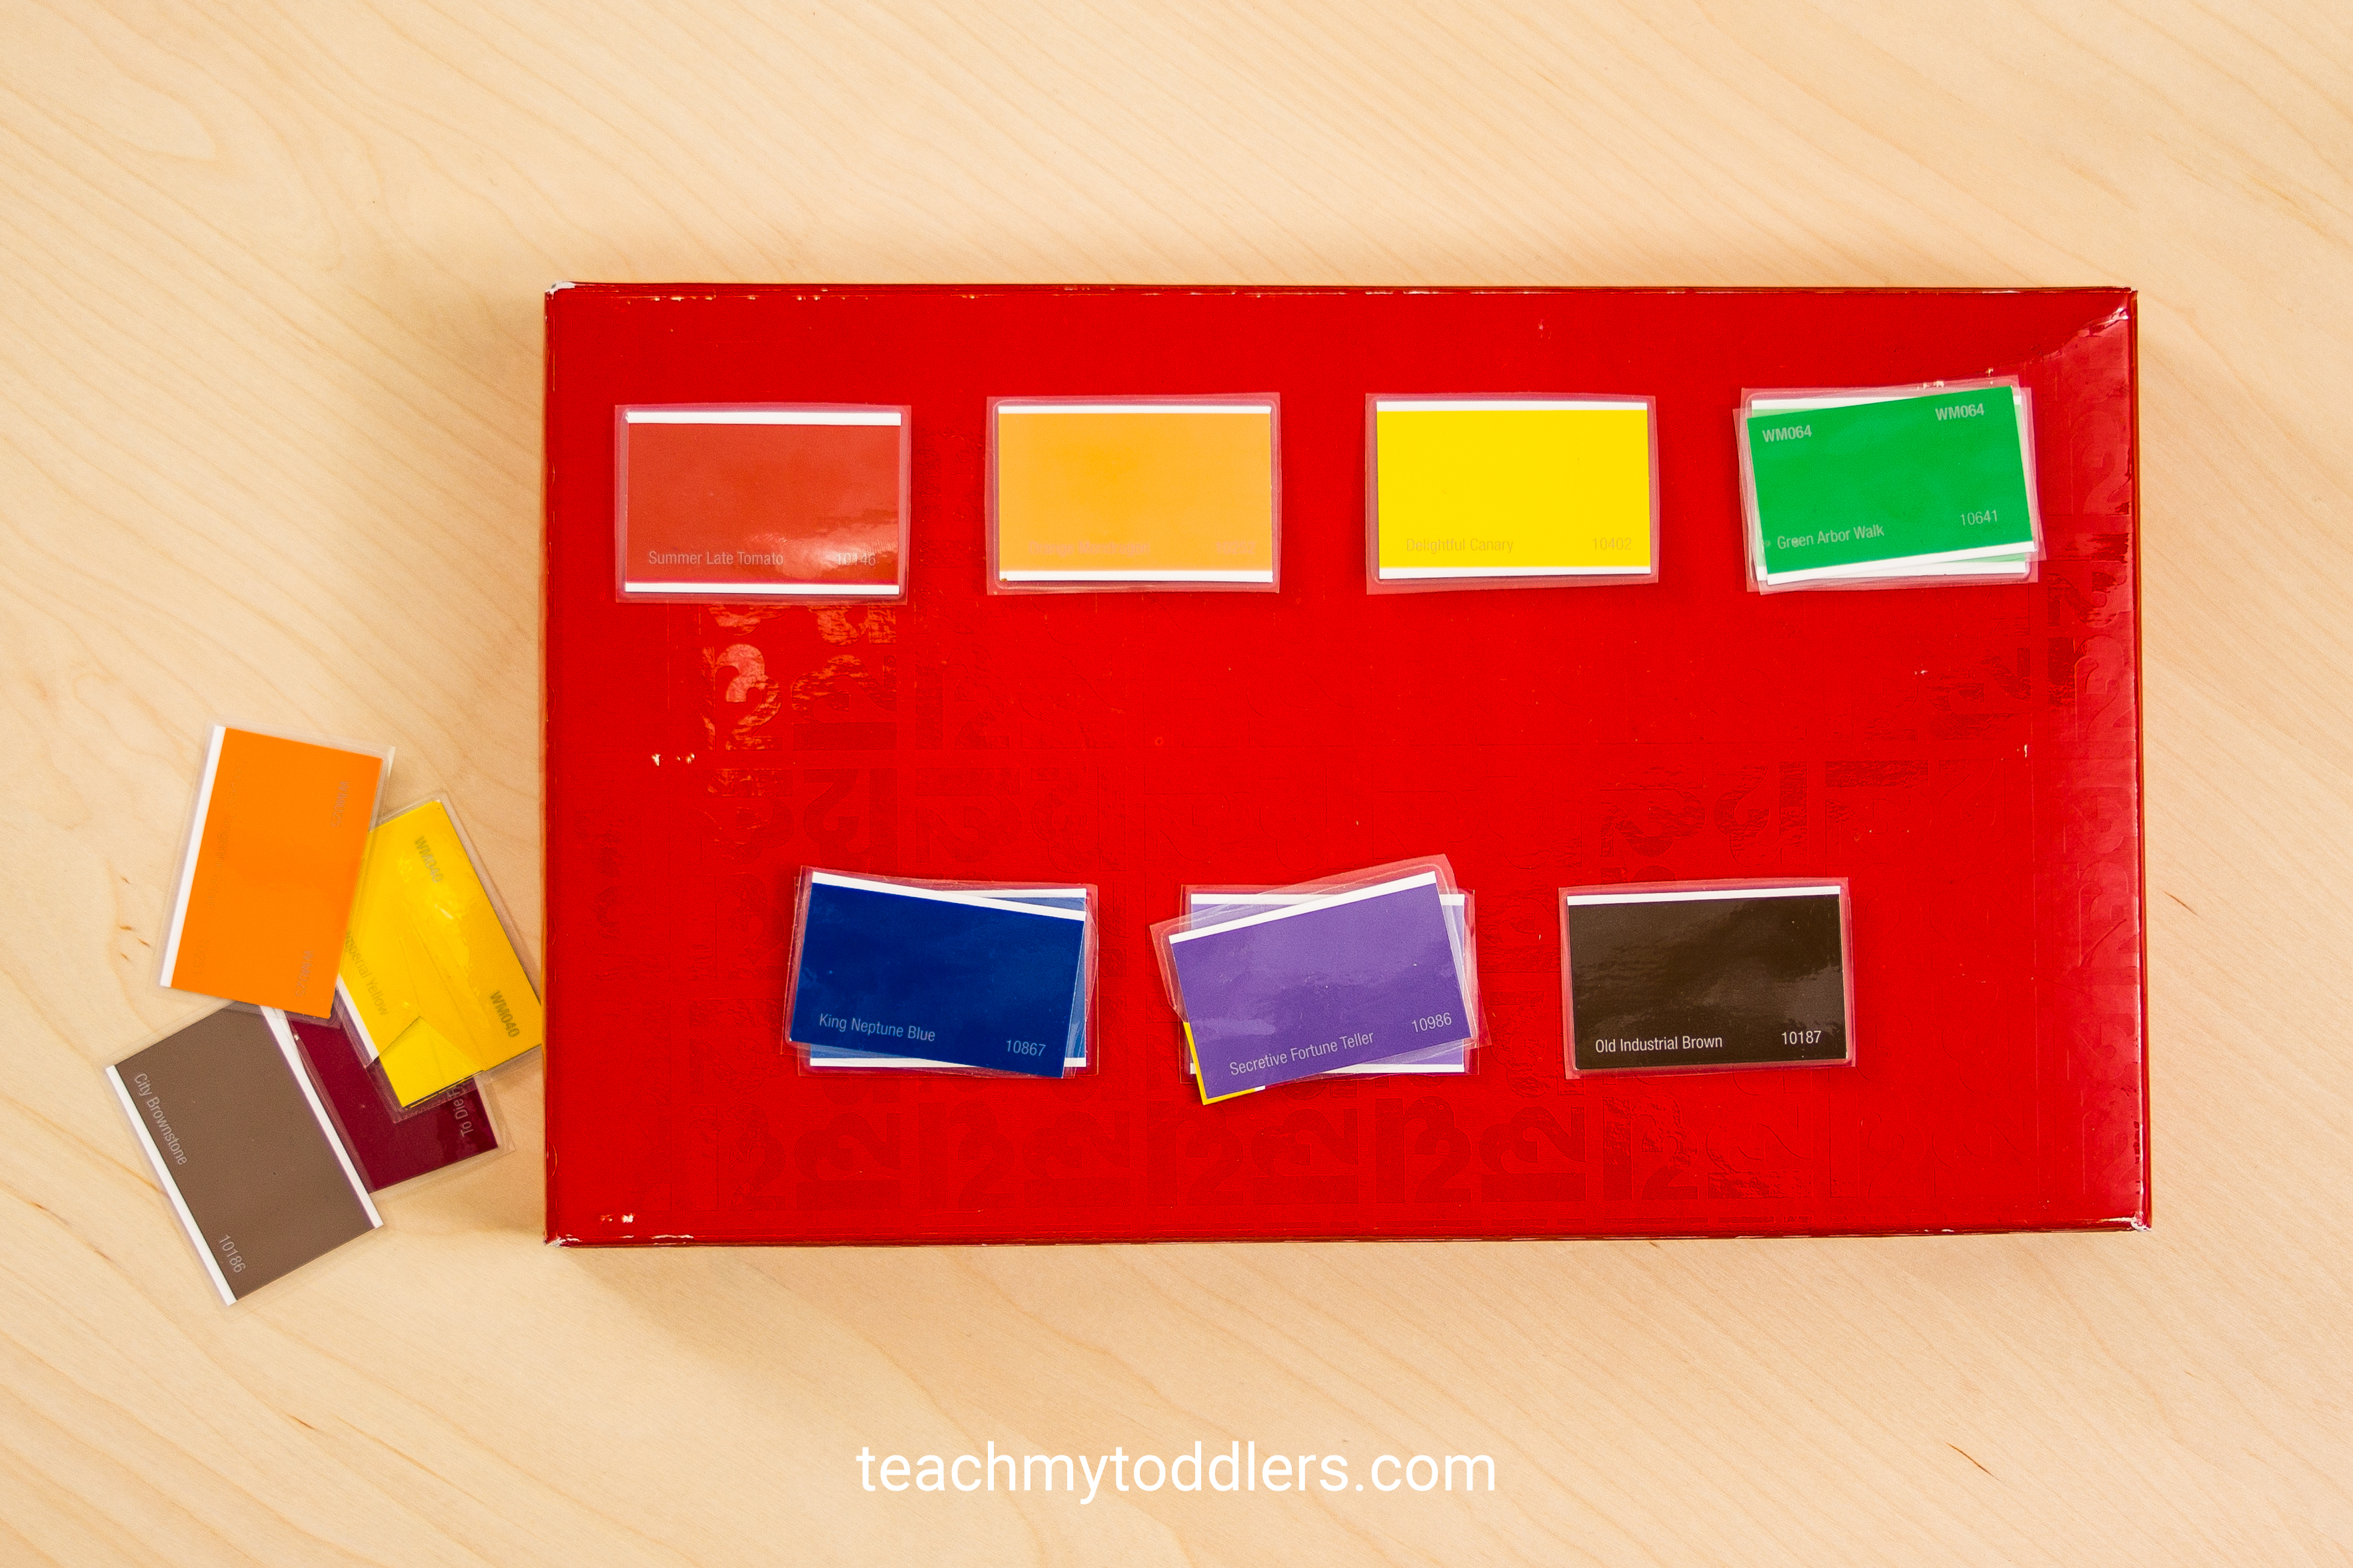 A fun activity to teach your toddlers colors with these paint chips